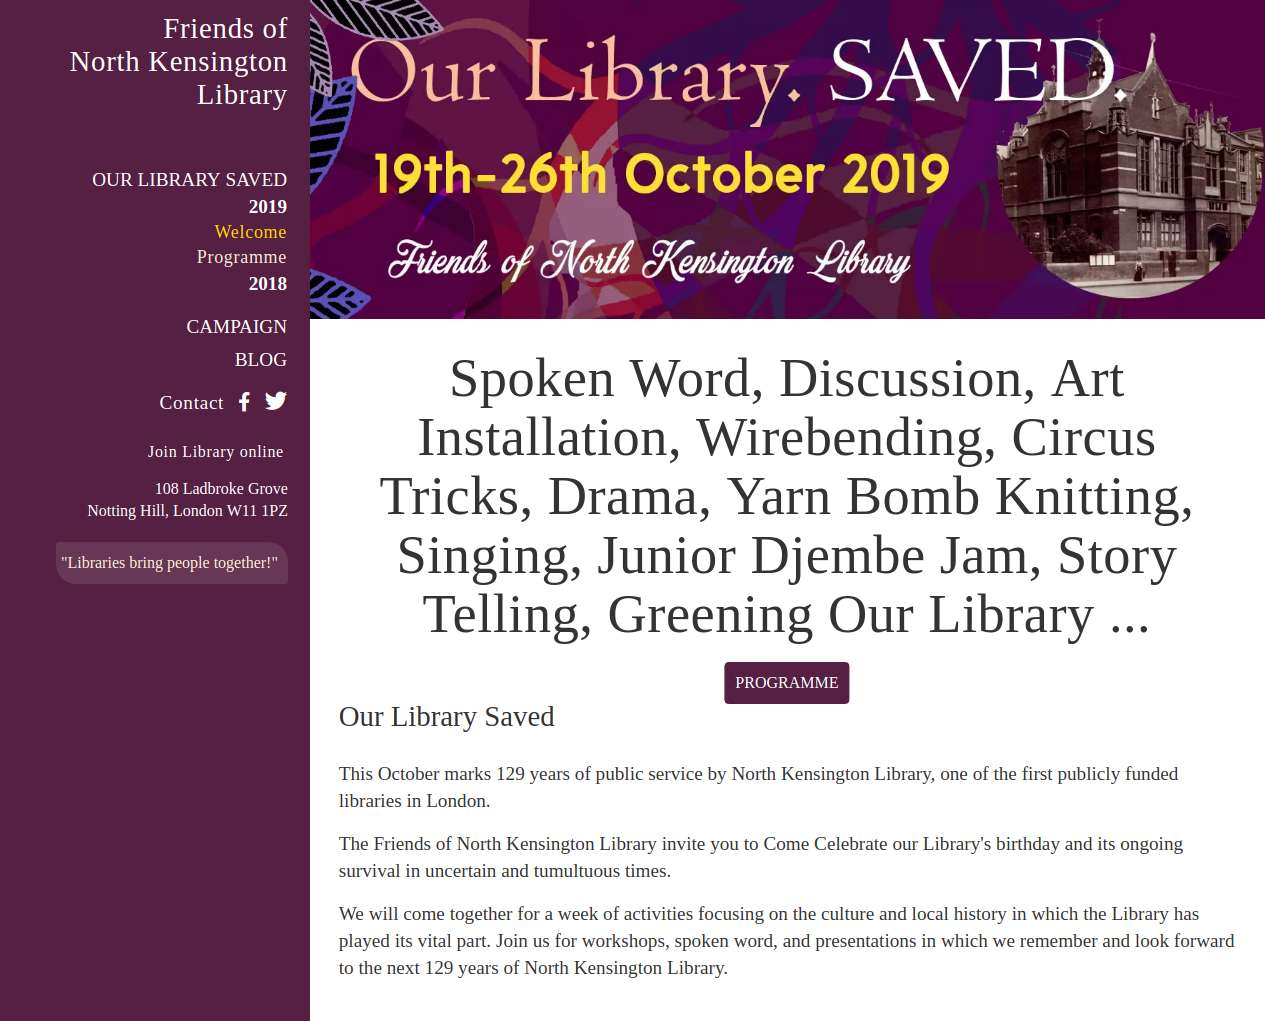 Friends of North Kensington Library